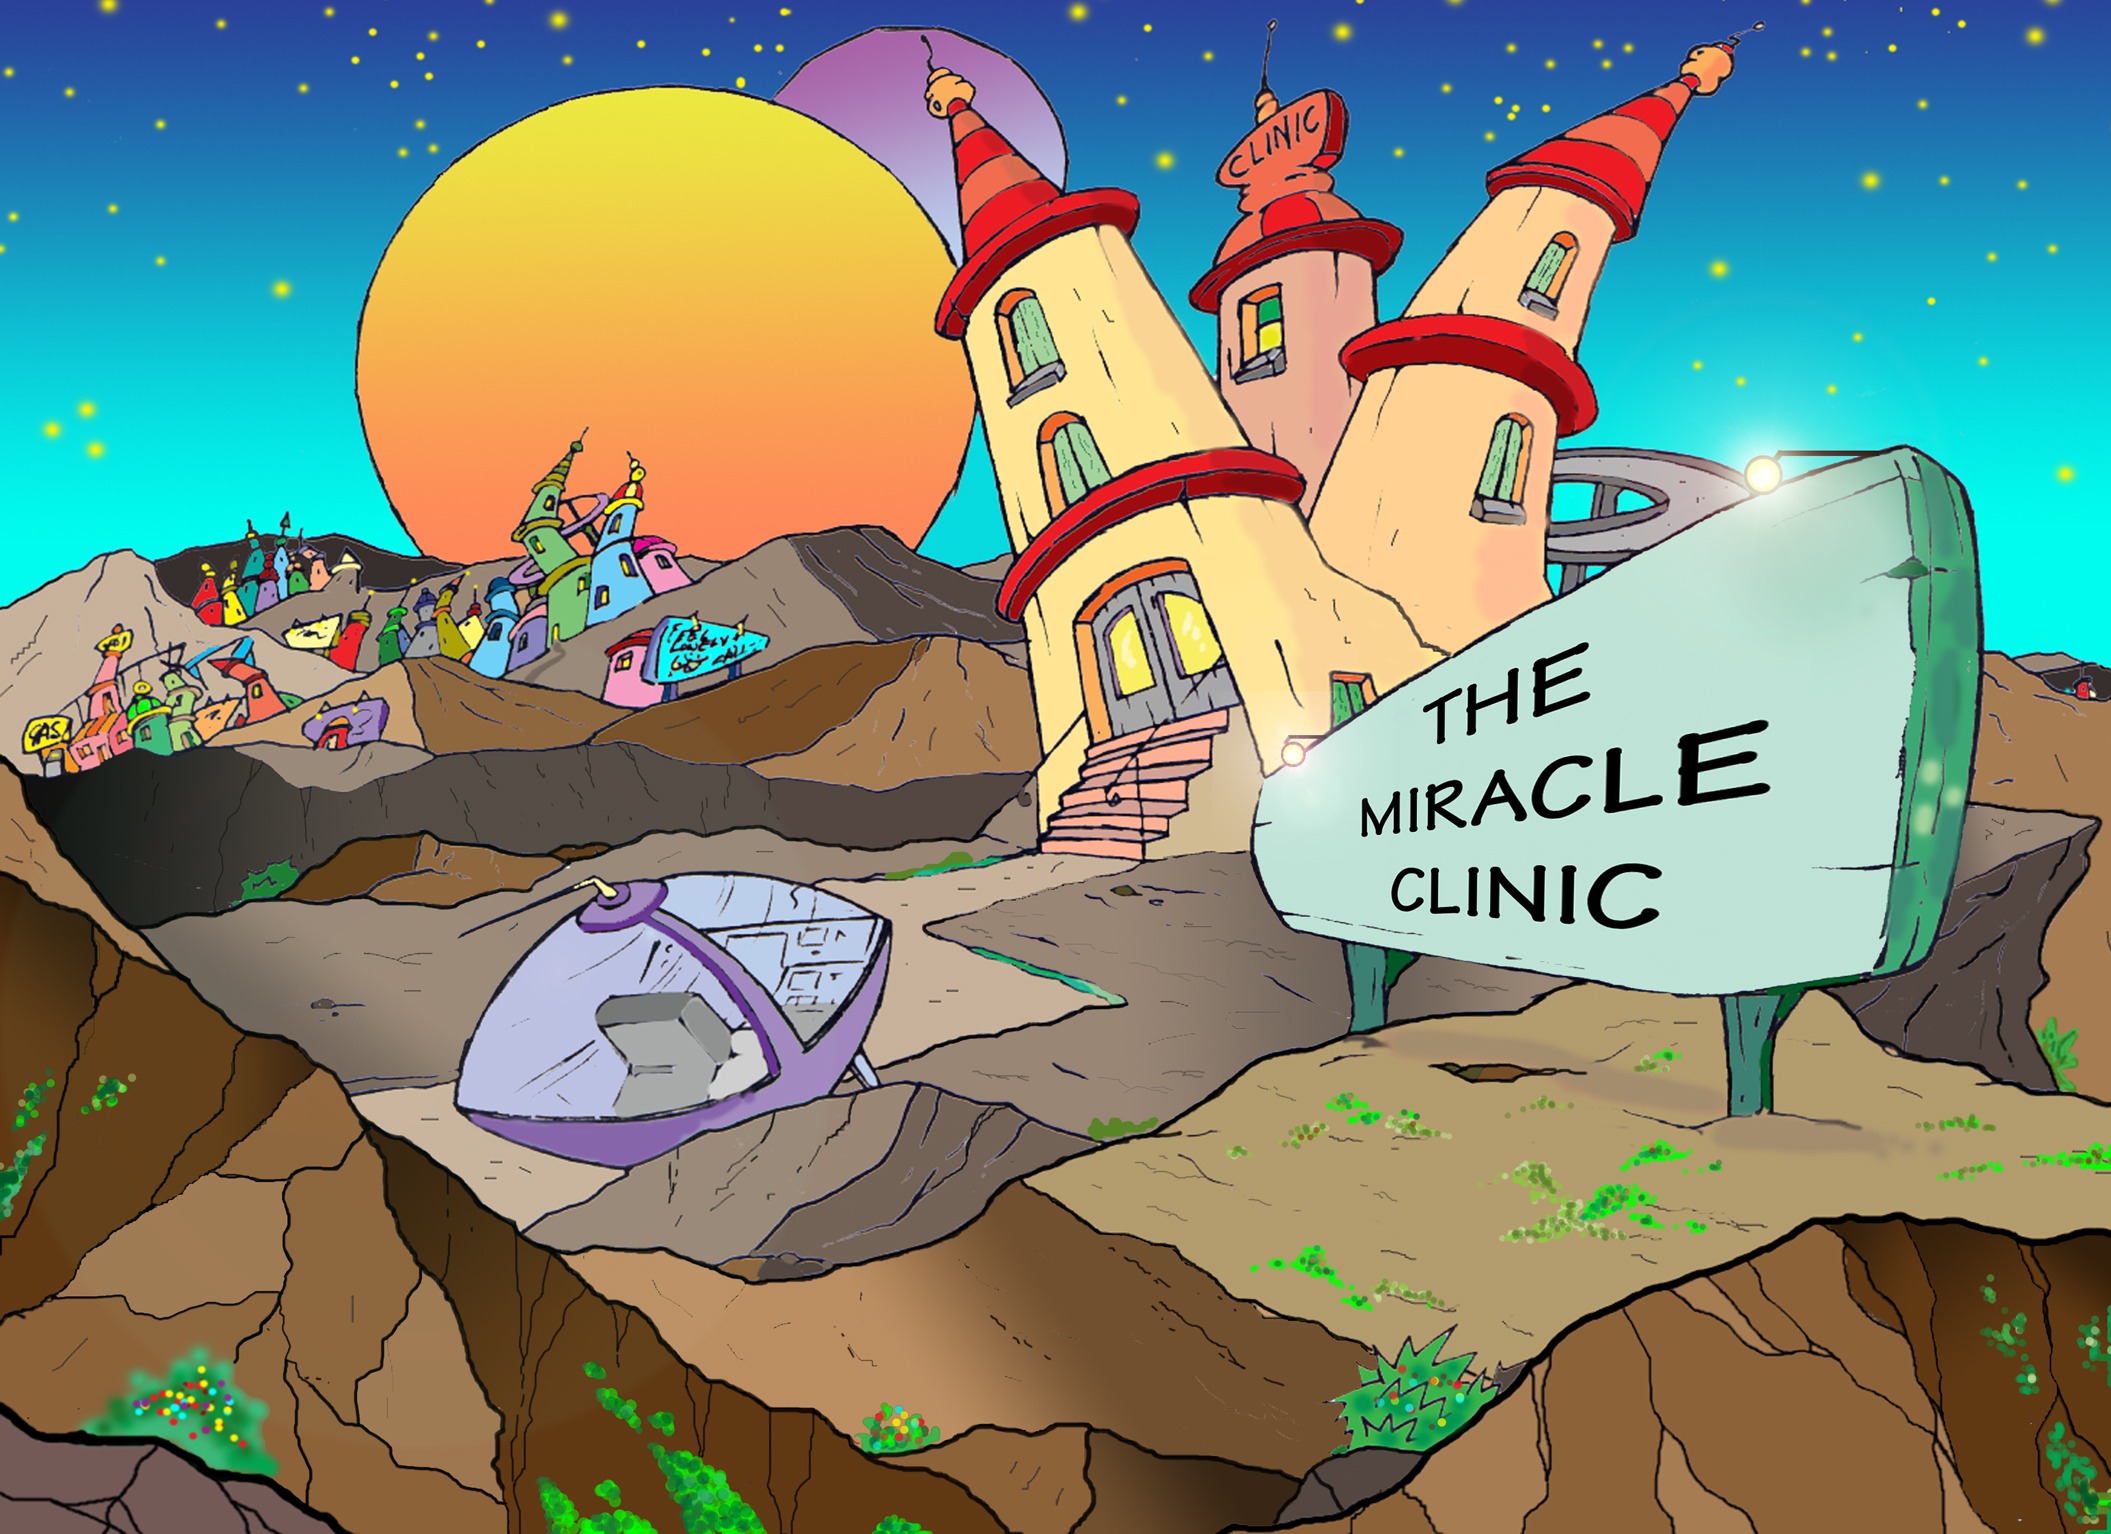 The Miracle Clinic